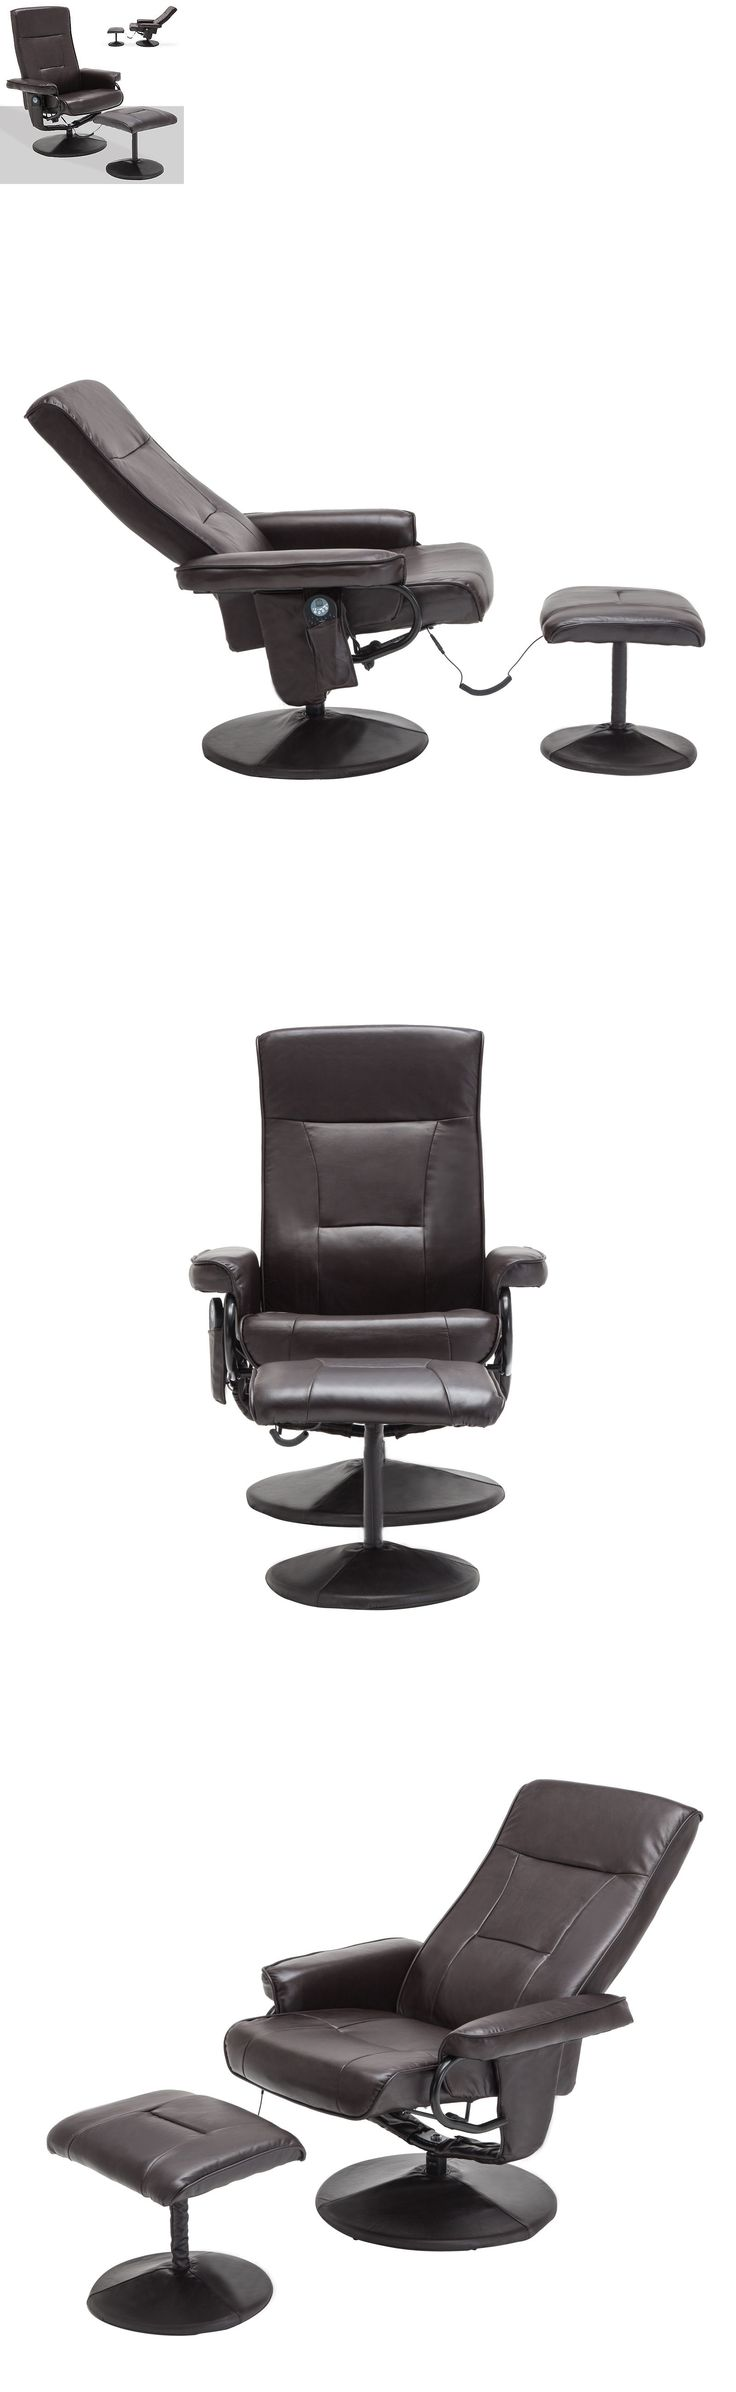 Electric Massage Chairs: Massage Leisure Recliner Swivel Chair 8 Motor Leather W/ Ottoman Footstool Brown BUY IT NOW ONLY: $138.9